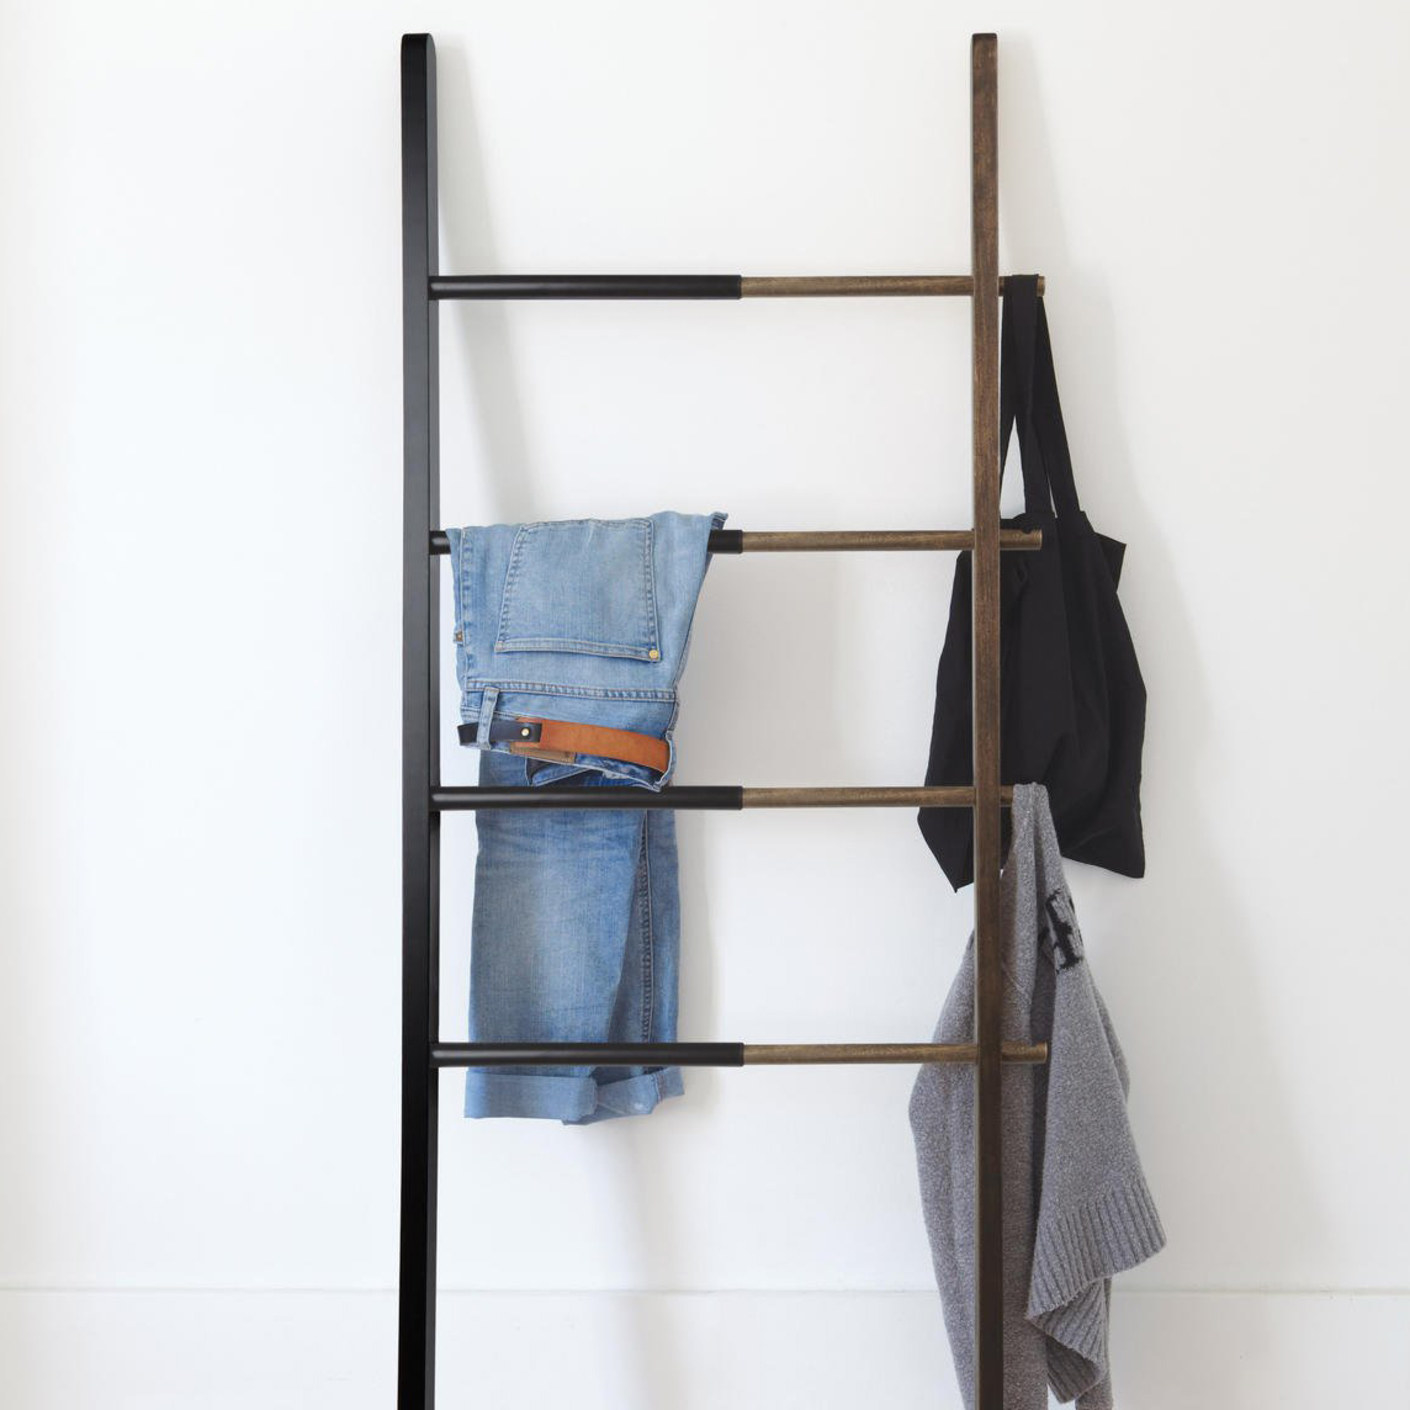 Clothes and bags hanging on the ladder rack